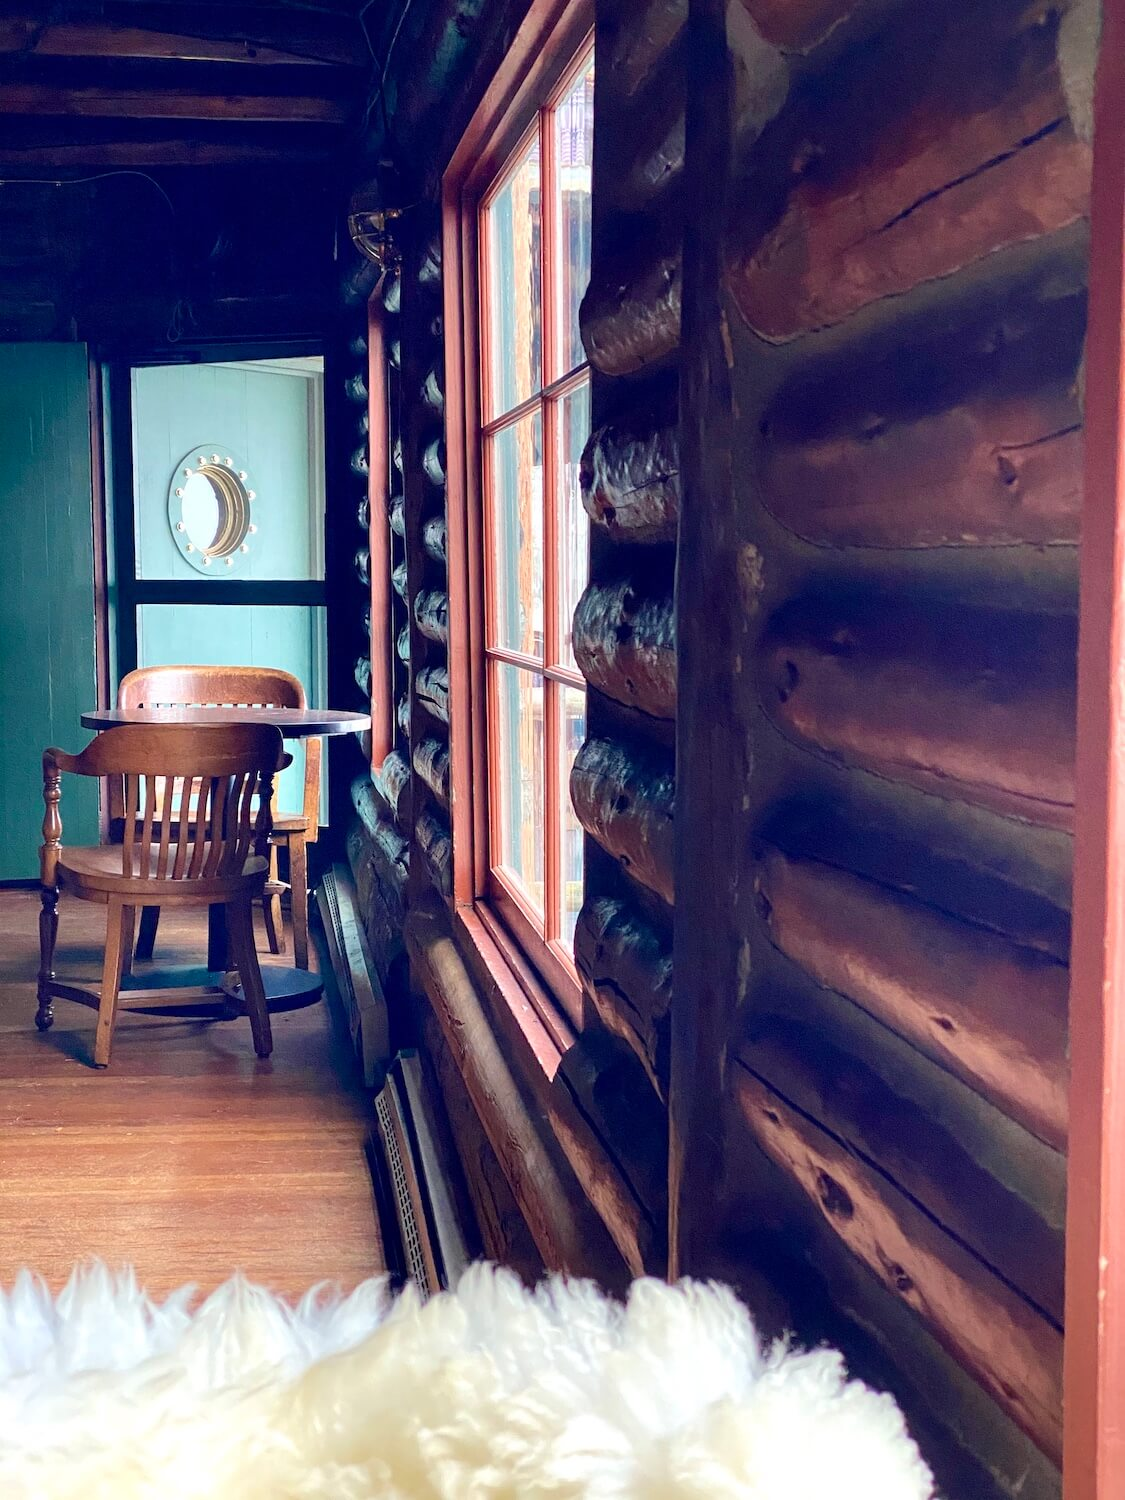 The inside of Captain Whidbey Hotel shows the fluffy white wool blanket draped over a chair while two wooden chairs sit on either side of a wood table, underneath a green door with a porthole. The building is made from logs.